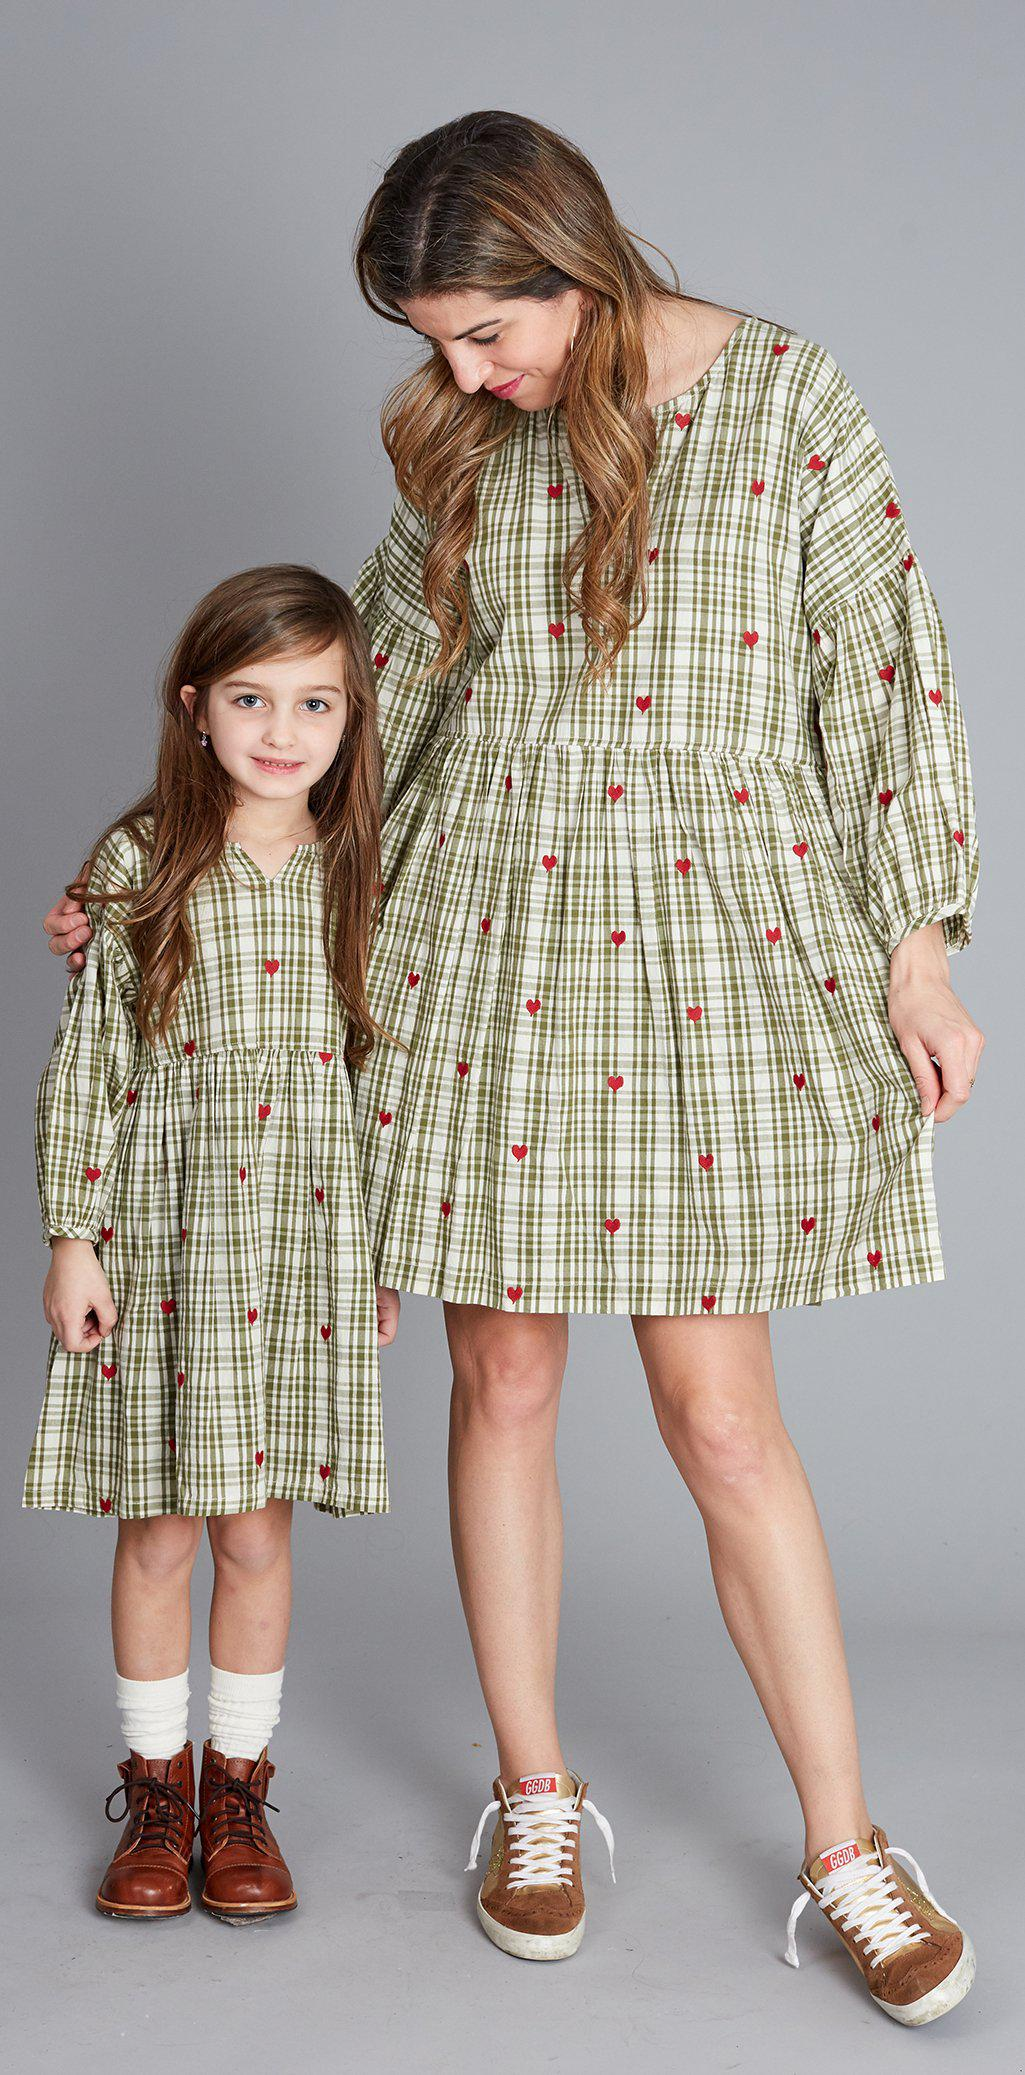 View larger version of Pink Chicken Celeste Dress XS army green plaid w/heart emb - 19fpcw193a